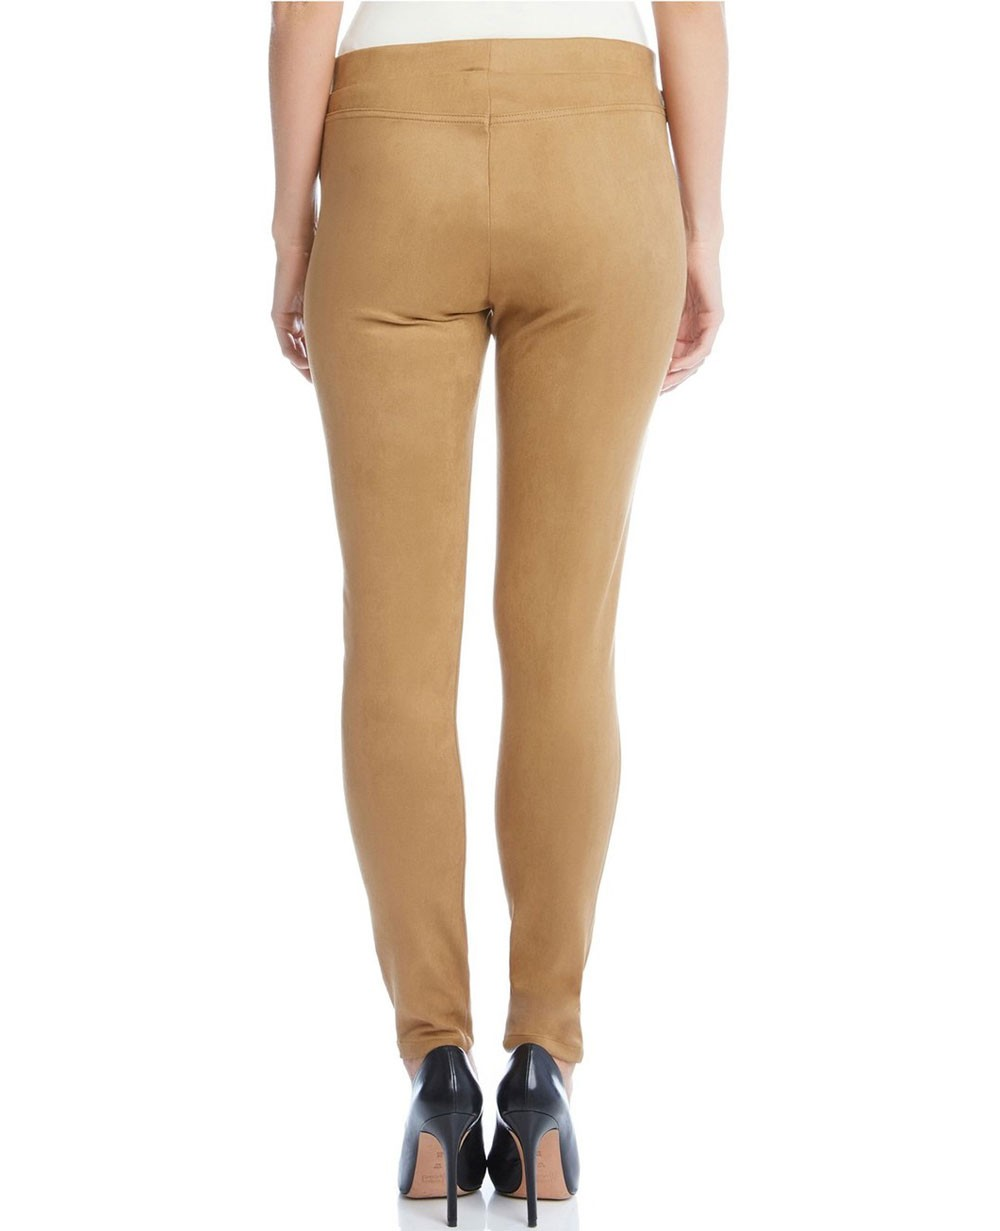 Women's jeans with a variety of cheap jeans, fashion jeans, and jeans on sale with many under $ Styles include cheap skinny jeans, cheap stretch jeans, and cheap low rise jeans. Shop all styles of discount womens jeans only at Clothing Under